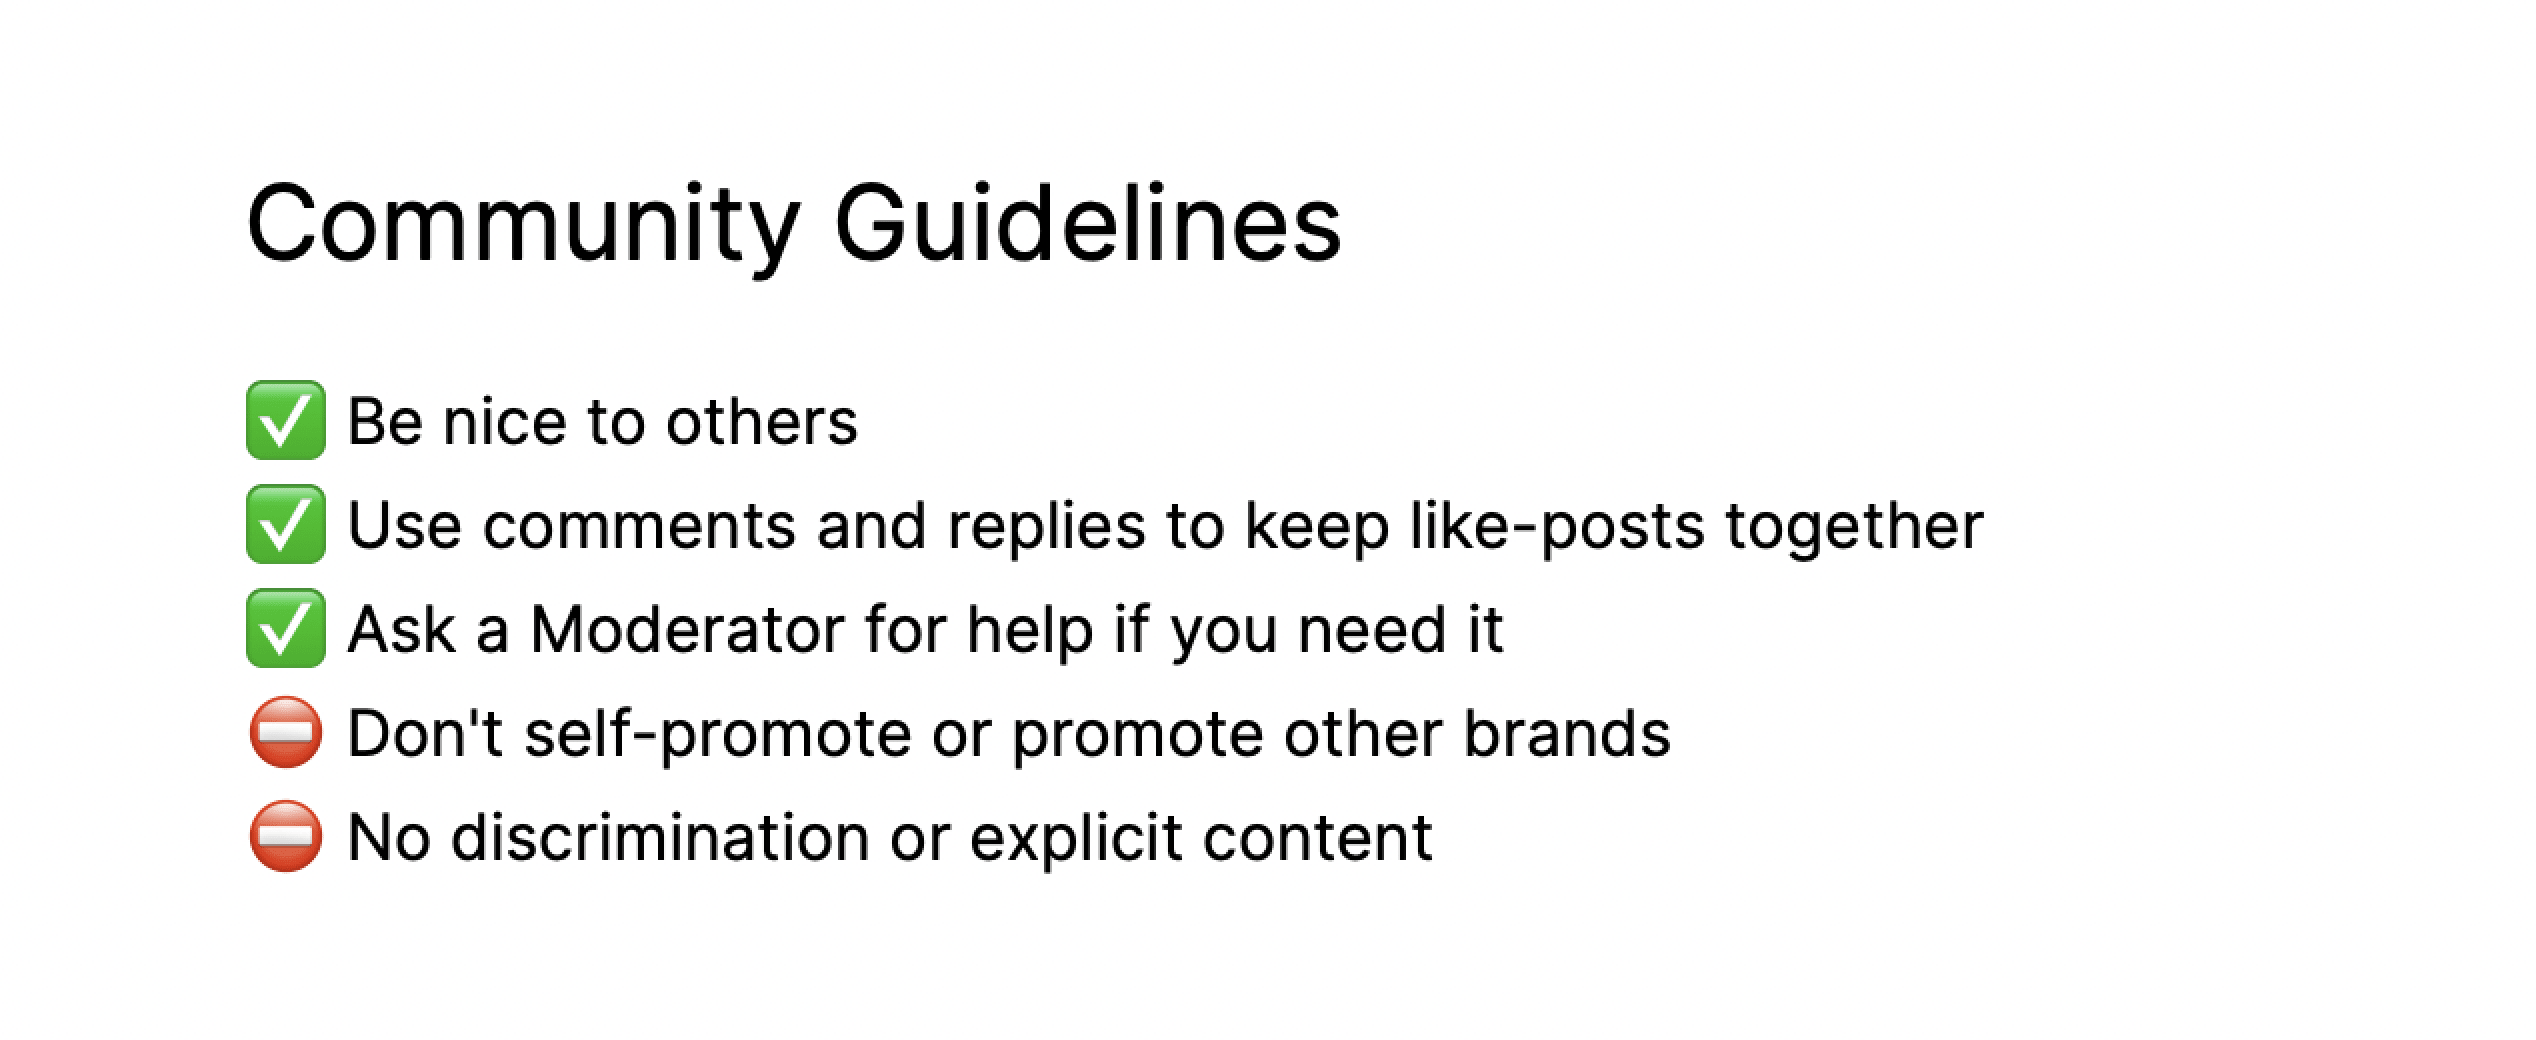 Rules and guidelines for an online community